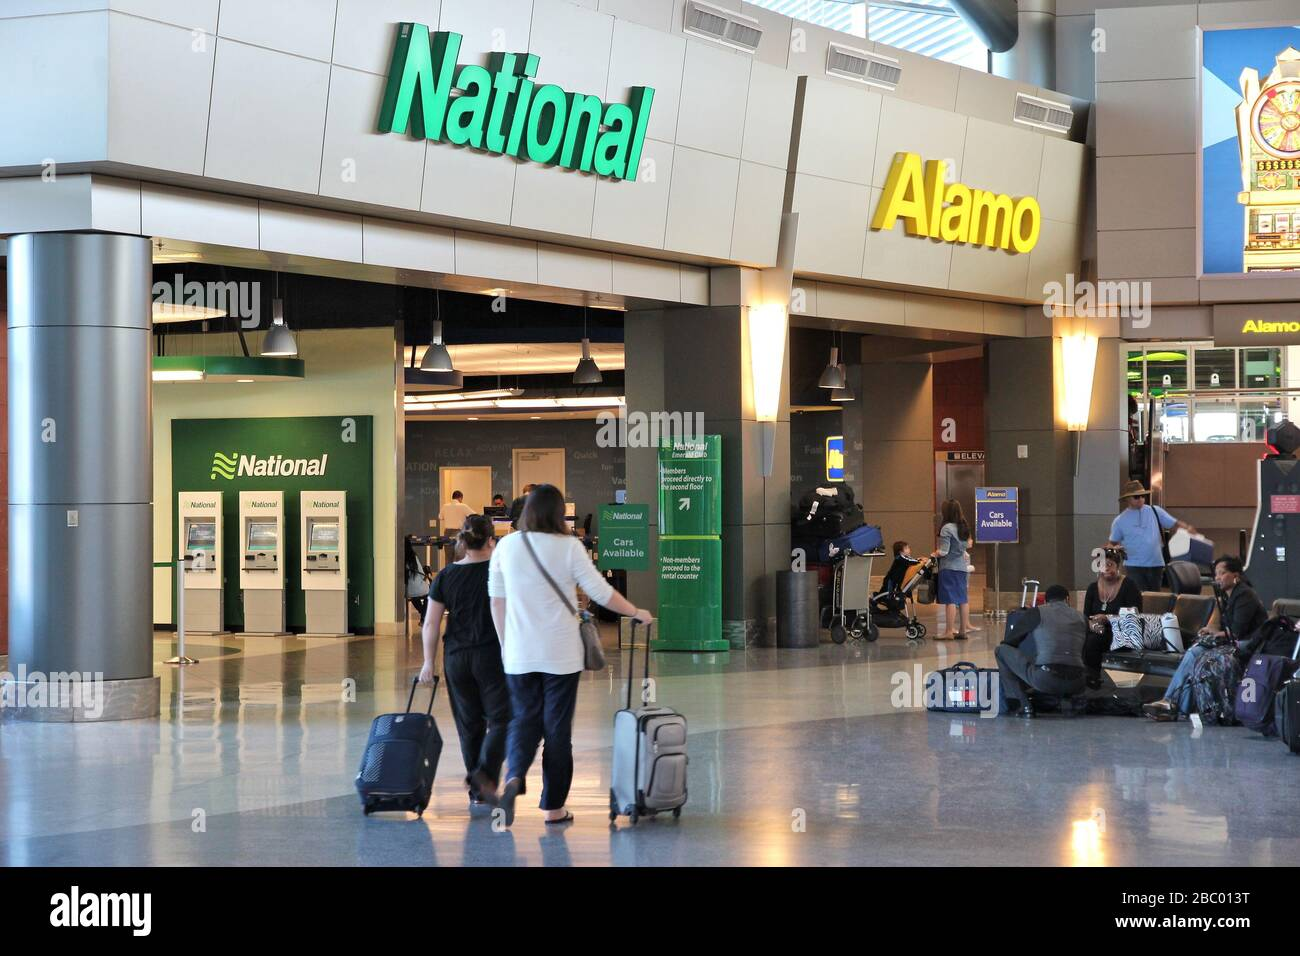 LAS VEGAS, USA - APRIL 13, 2014: Alamo and National car rental airport office in Las Vegas. Both brands are owned by Enterprise Holdings, company empl Stock Photo